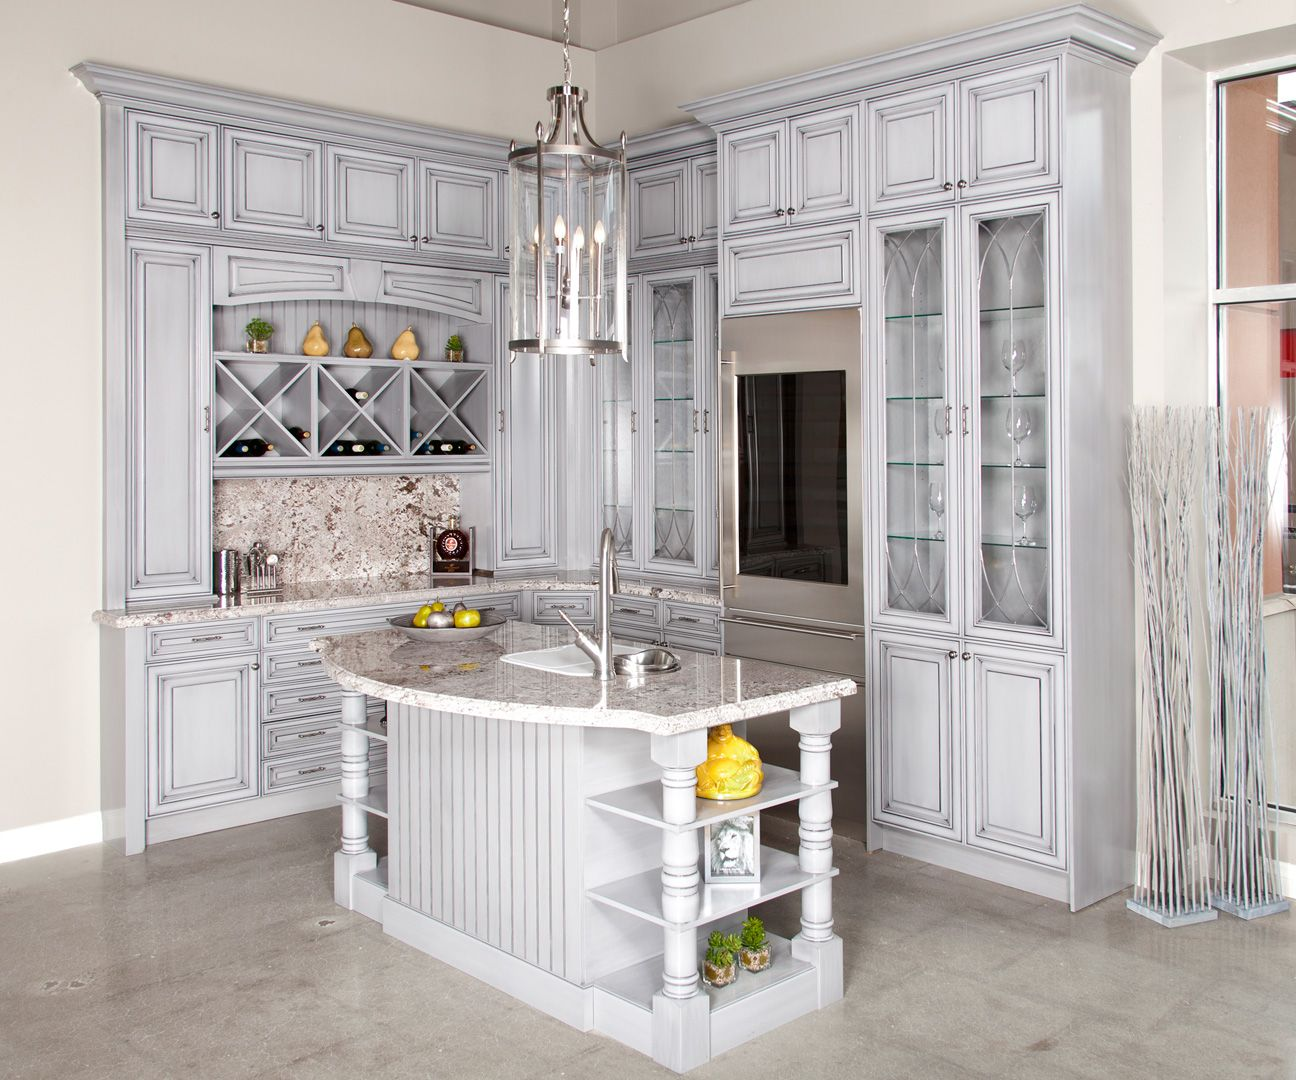 Raywal.....but with a different island | Kitchen Styles | Pinterest ...